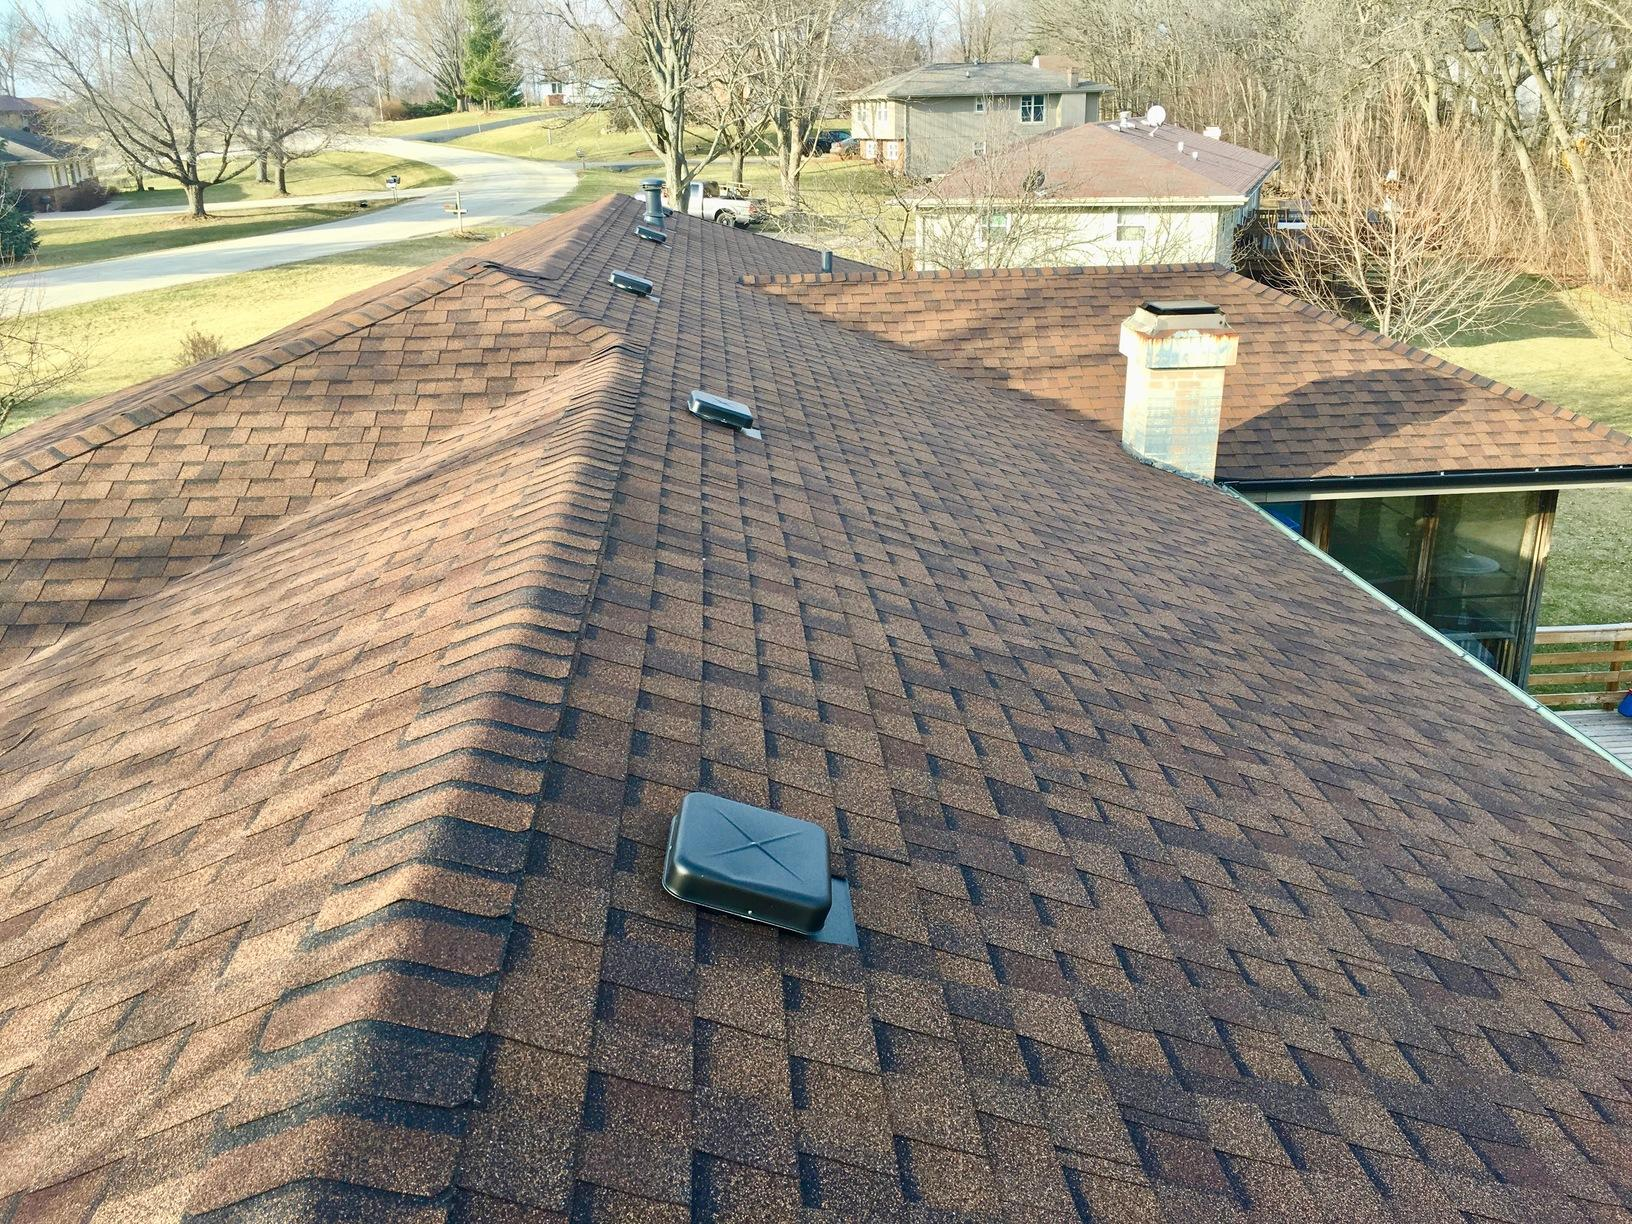 New Roof Installation in Roscoe, IL - After Photo